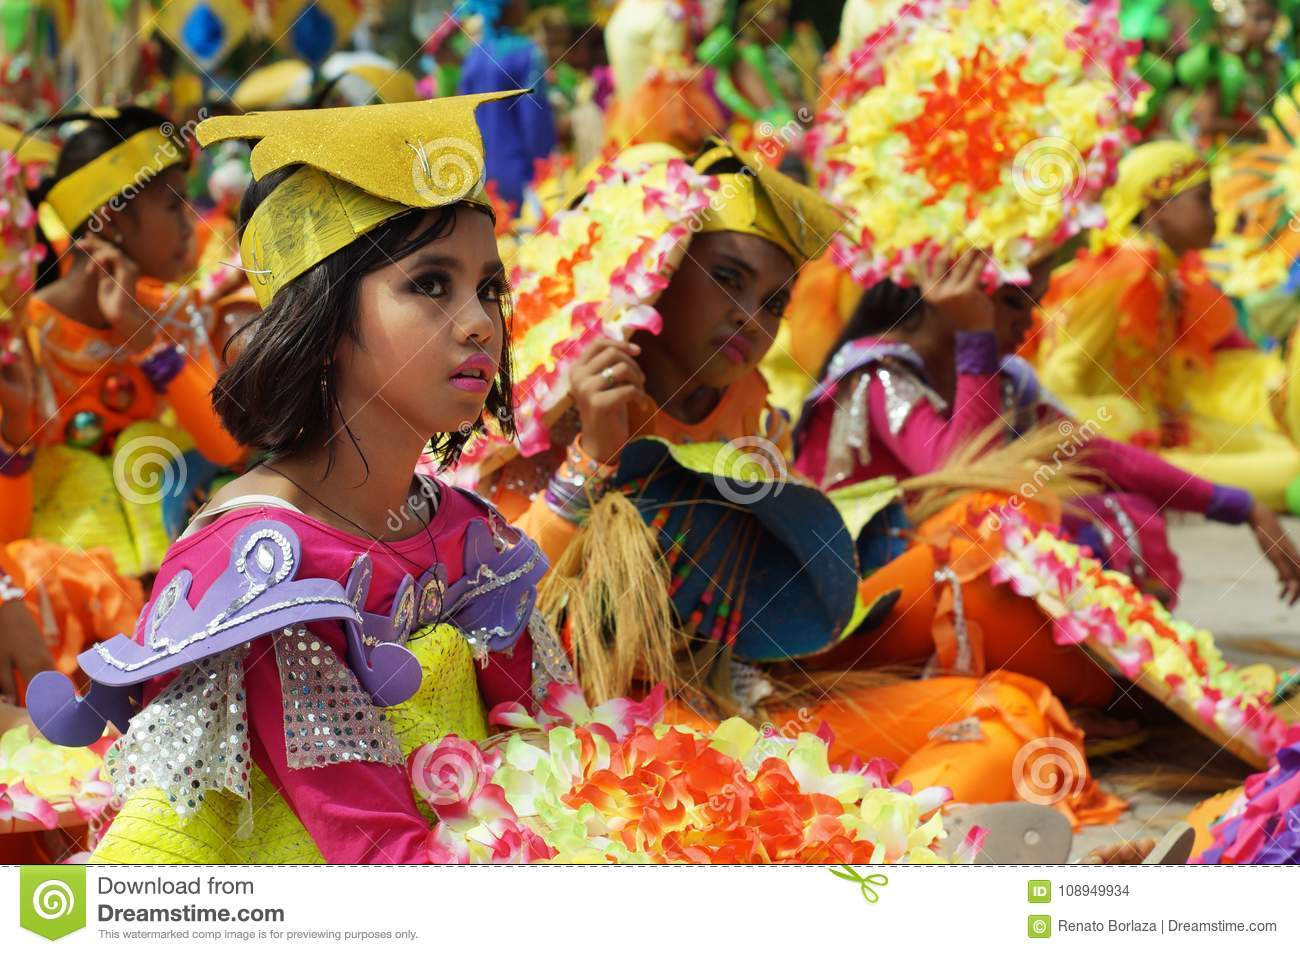 Sitting participant in diverse costumes of street dancer